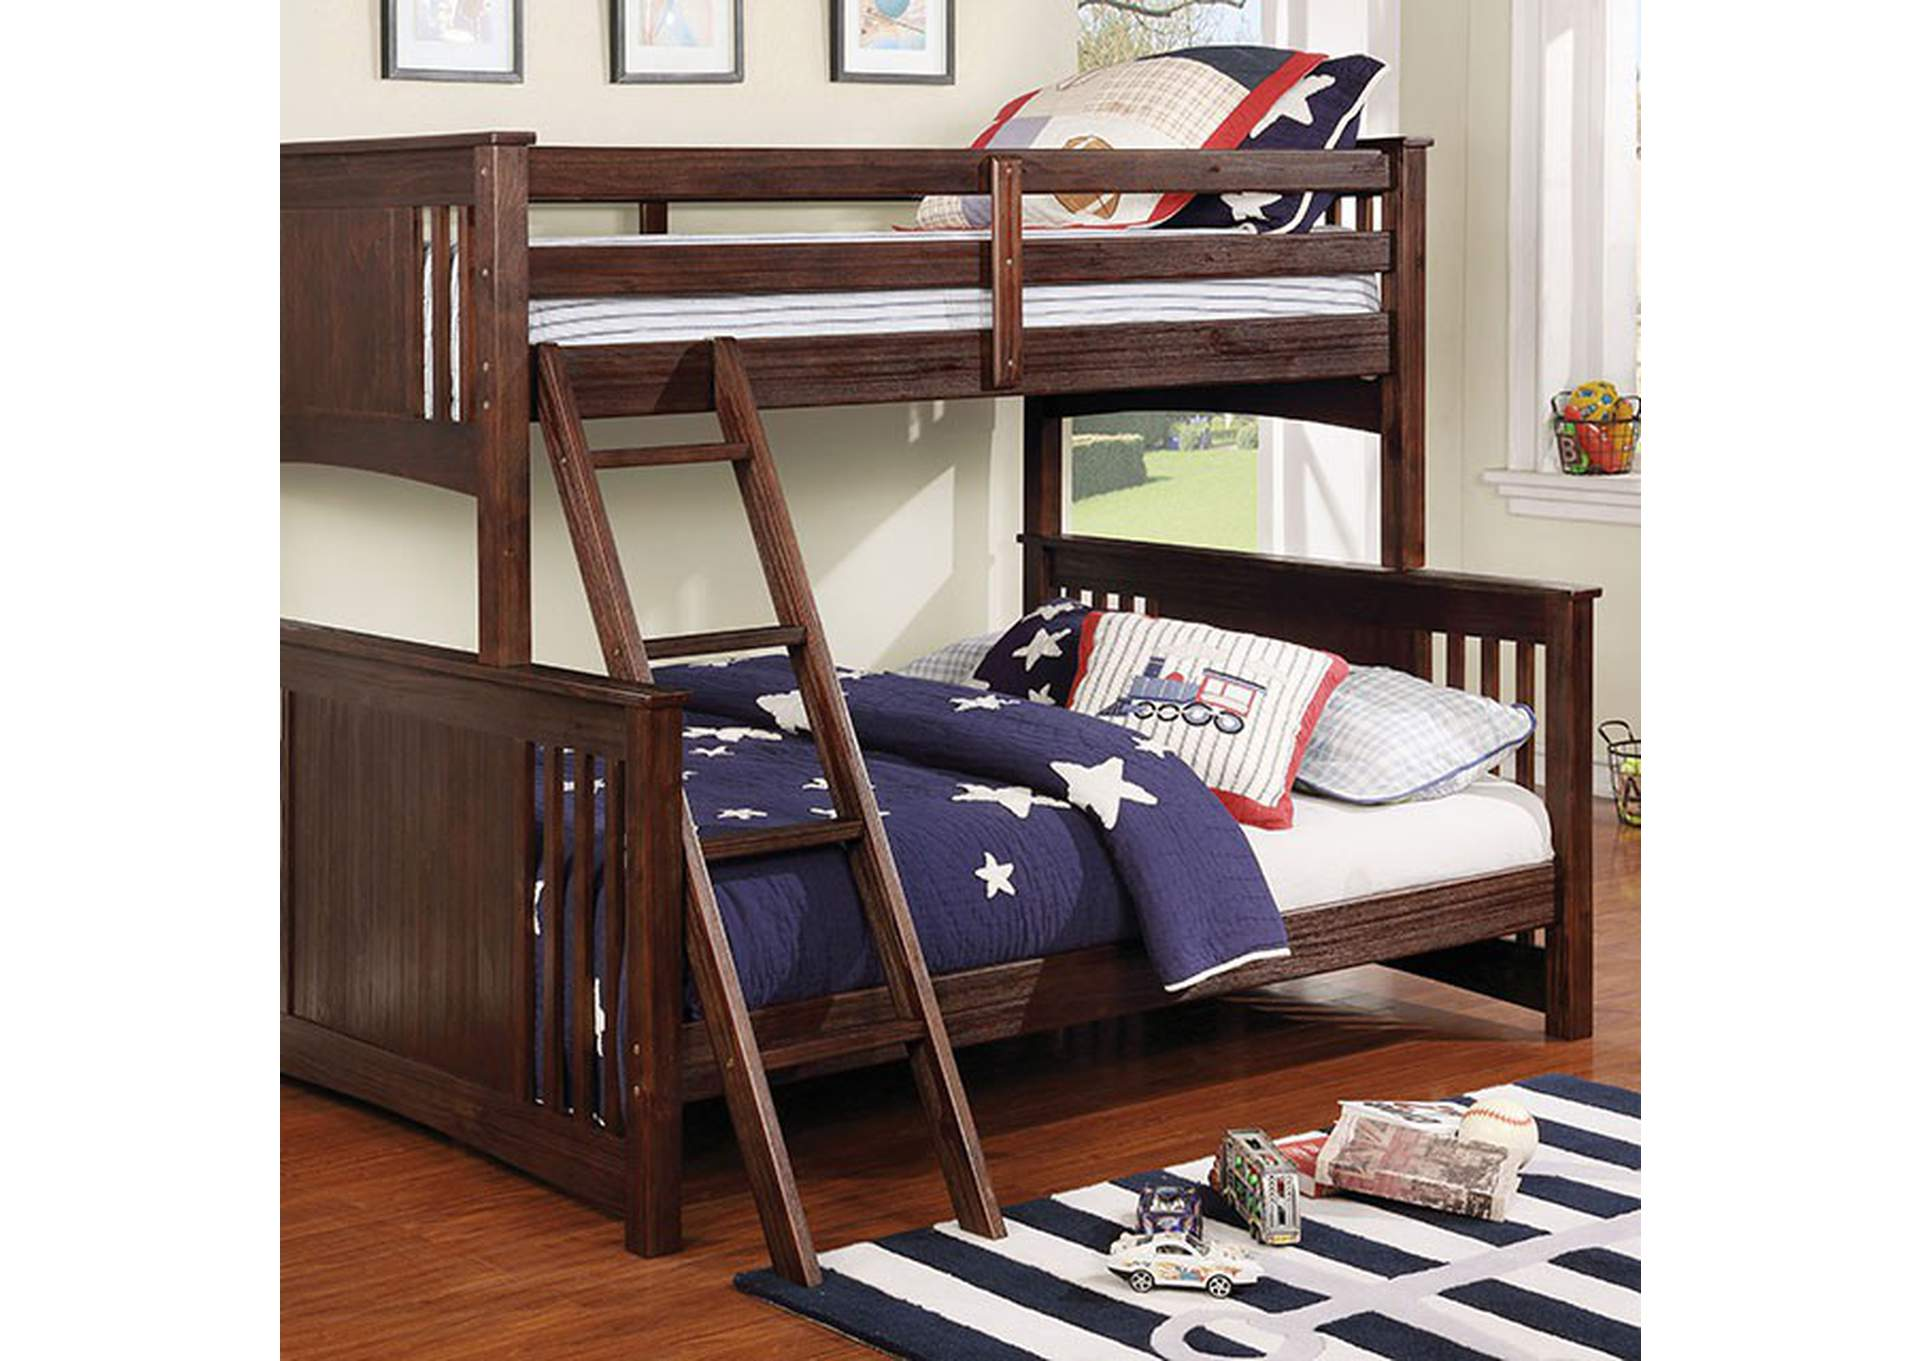 Spring Creek Wire-Brushed Dark Walnut Twin/Full Bunk Bed,Furniture of America